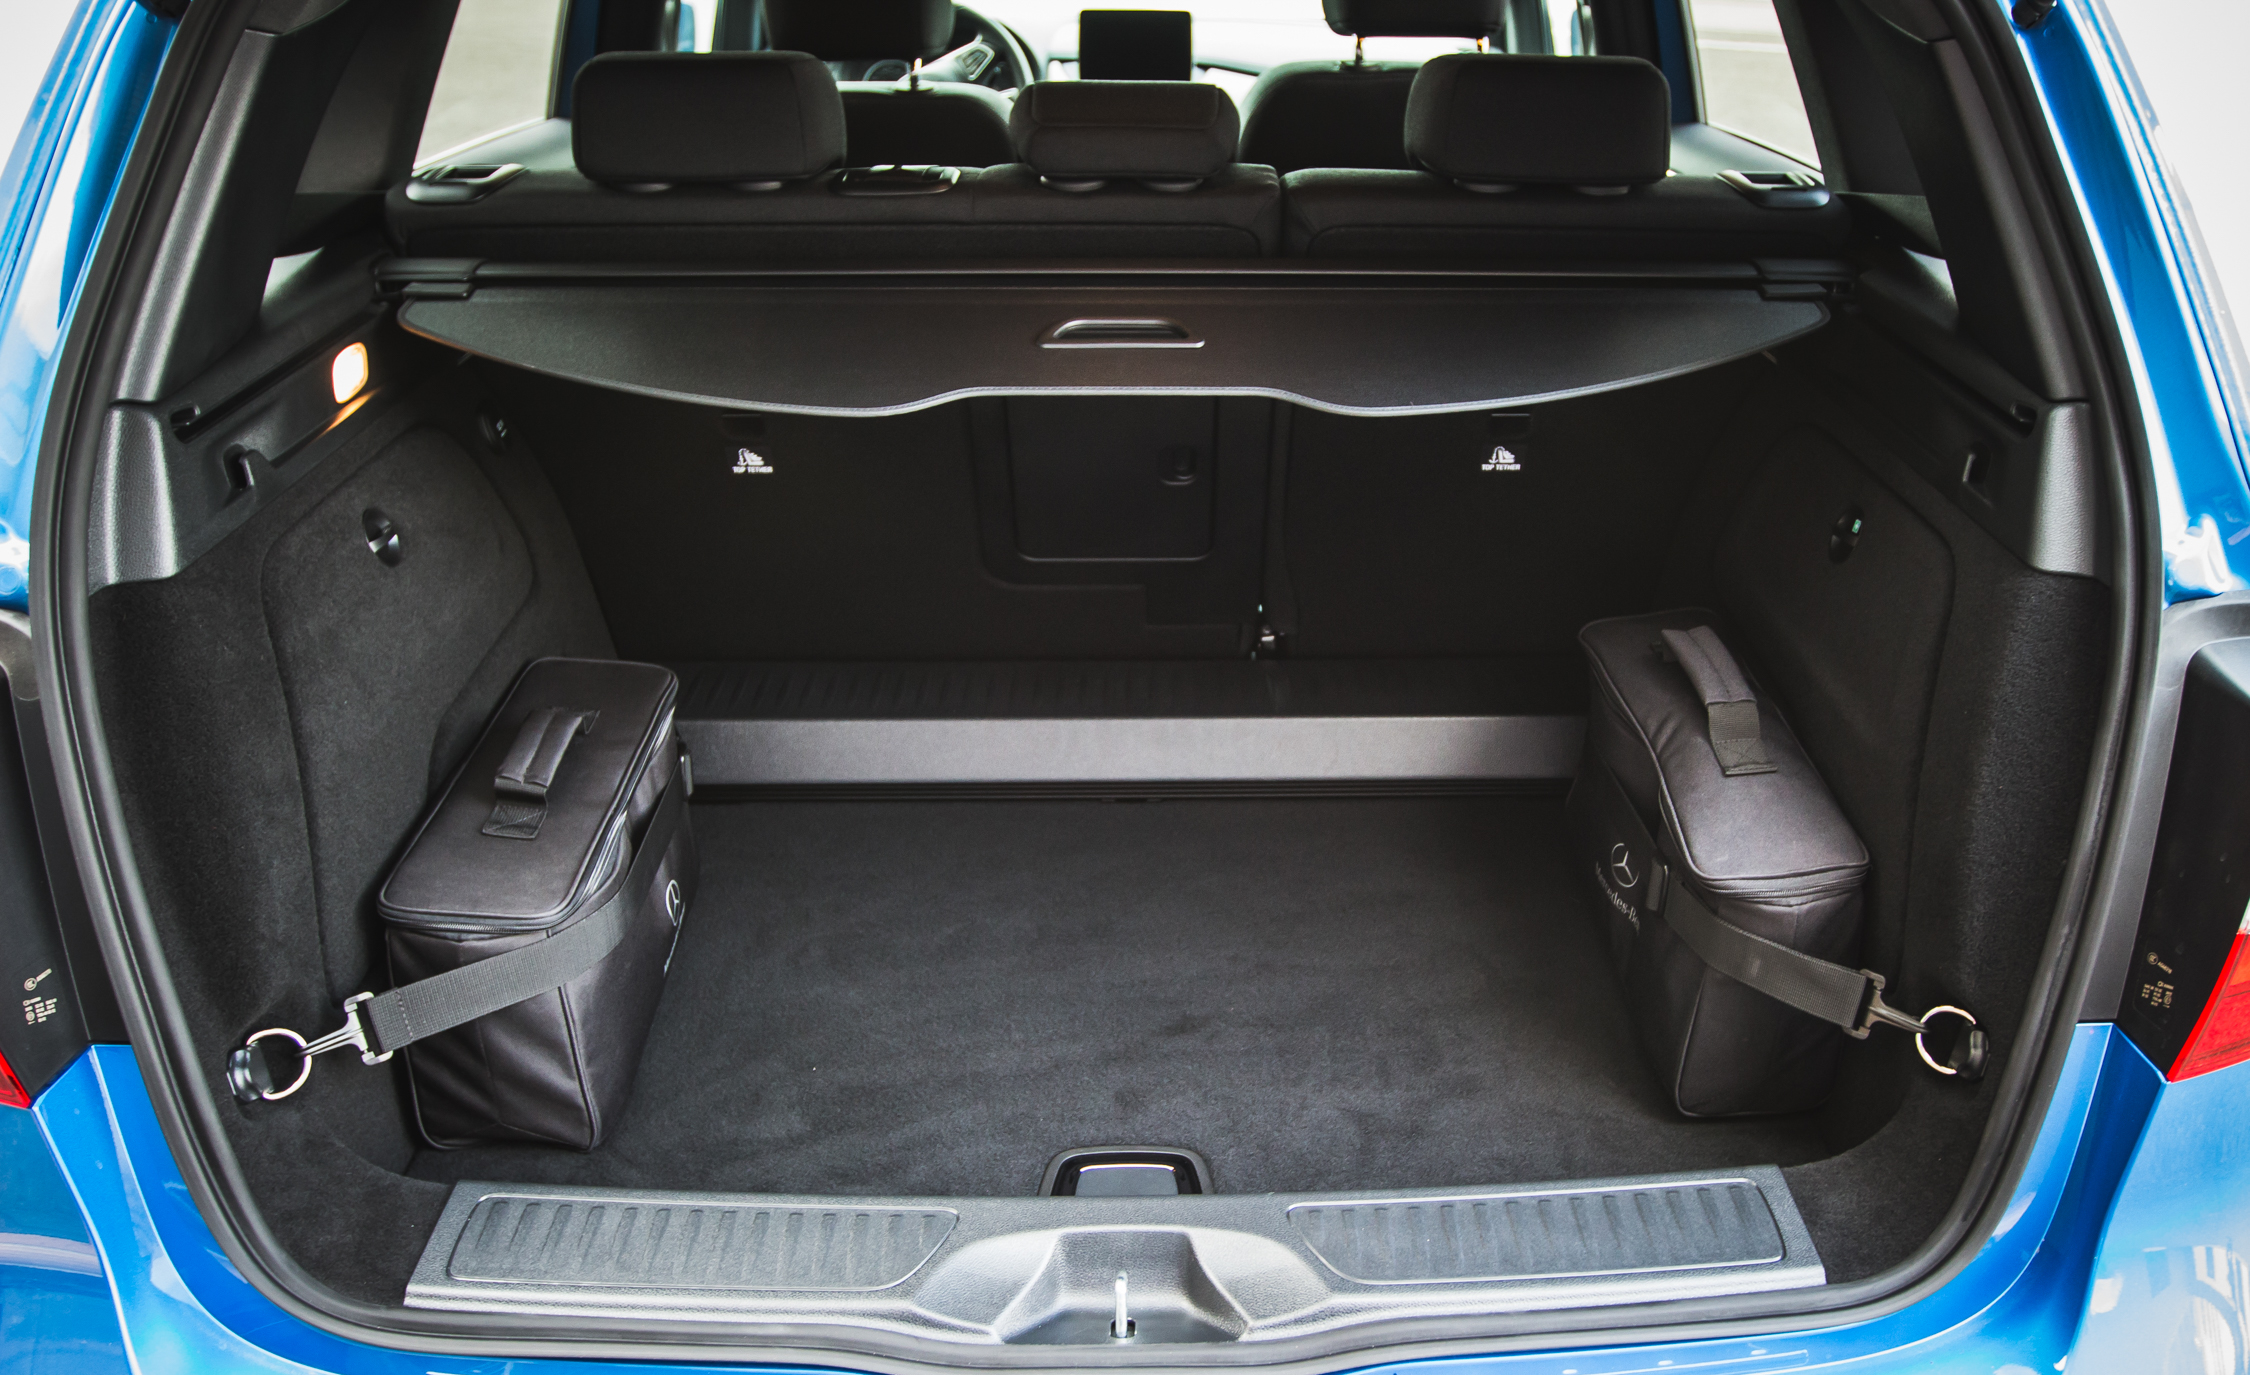 2017 Mercedes Benz B250e Interior View Cargo Space (Photo 21 of 24)